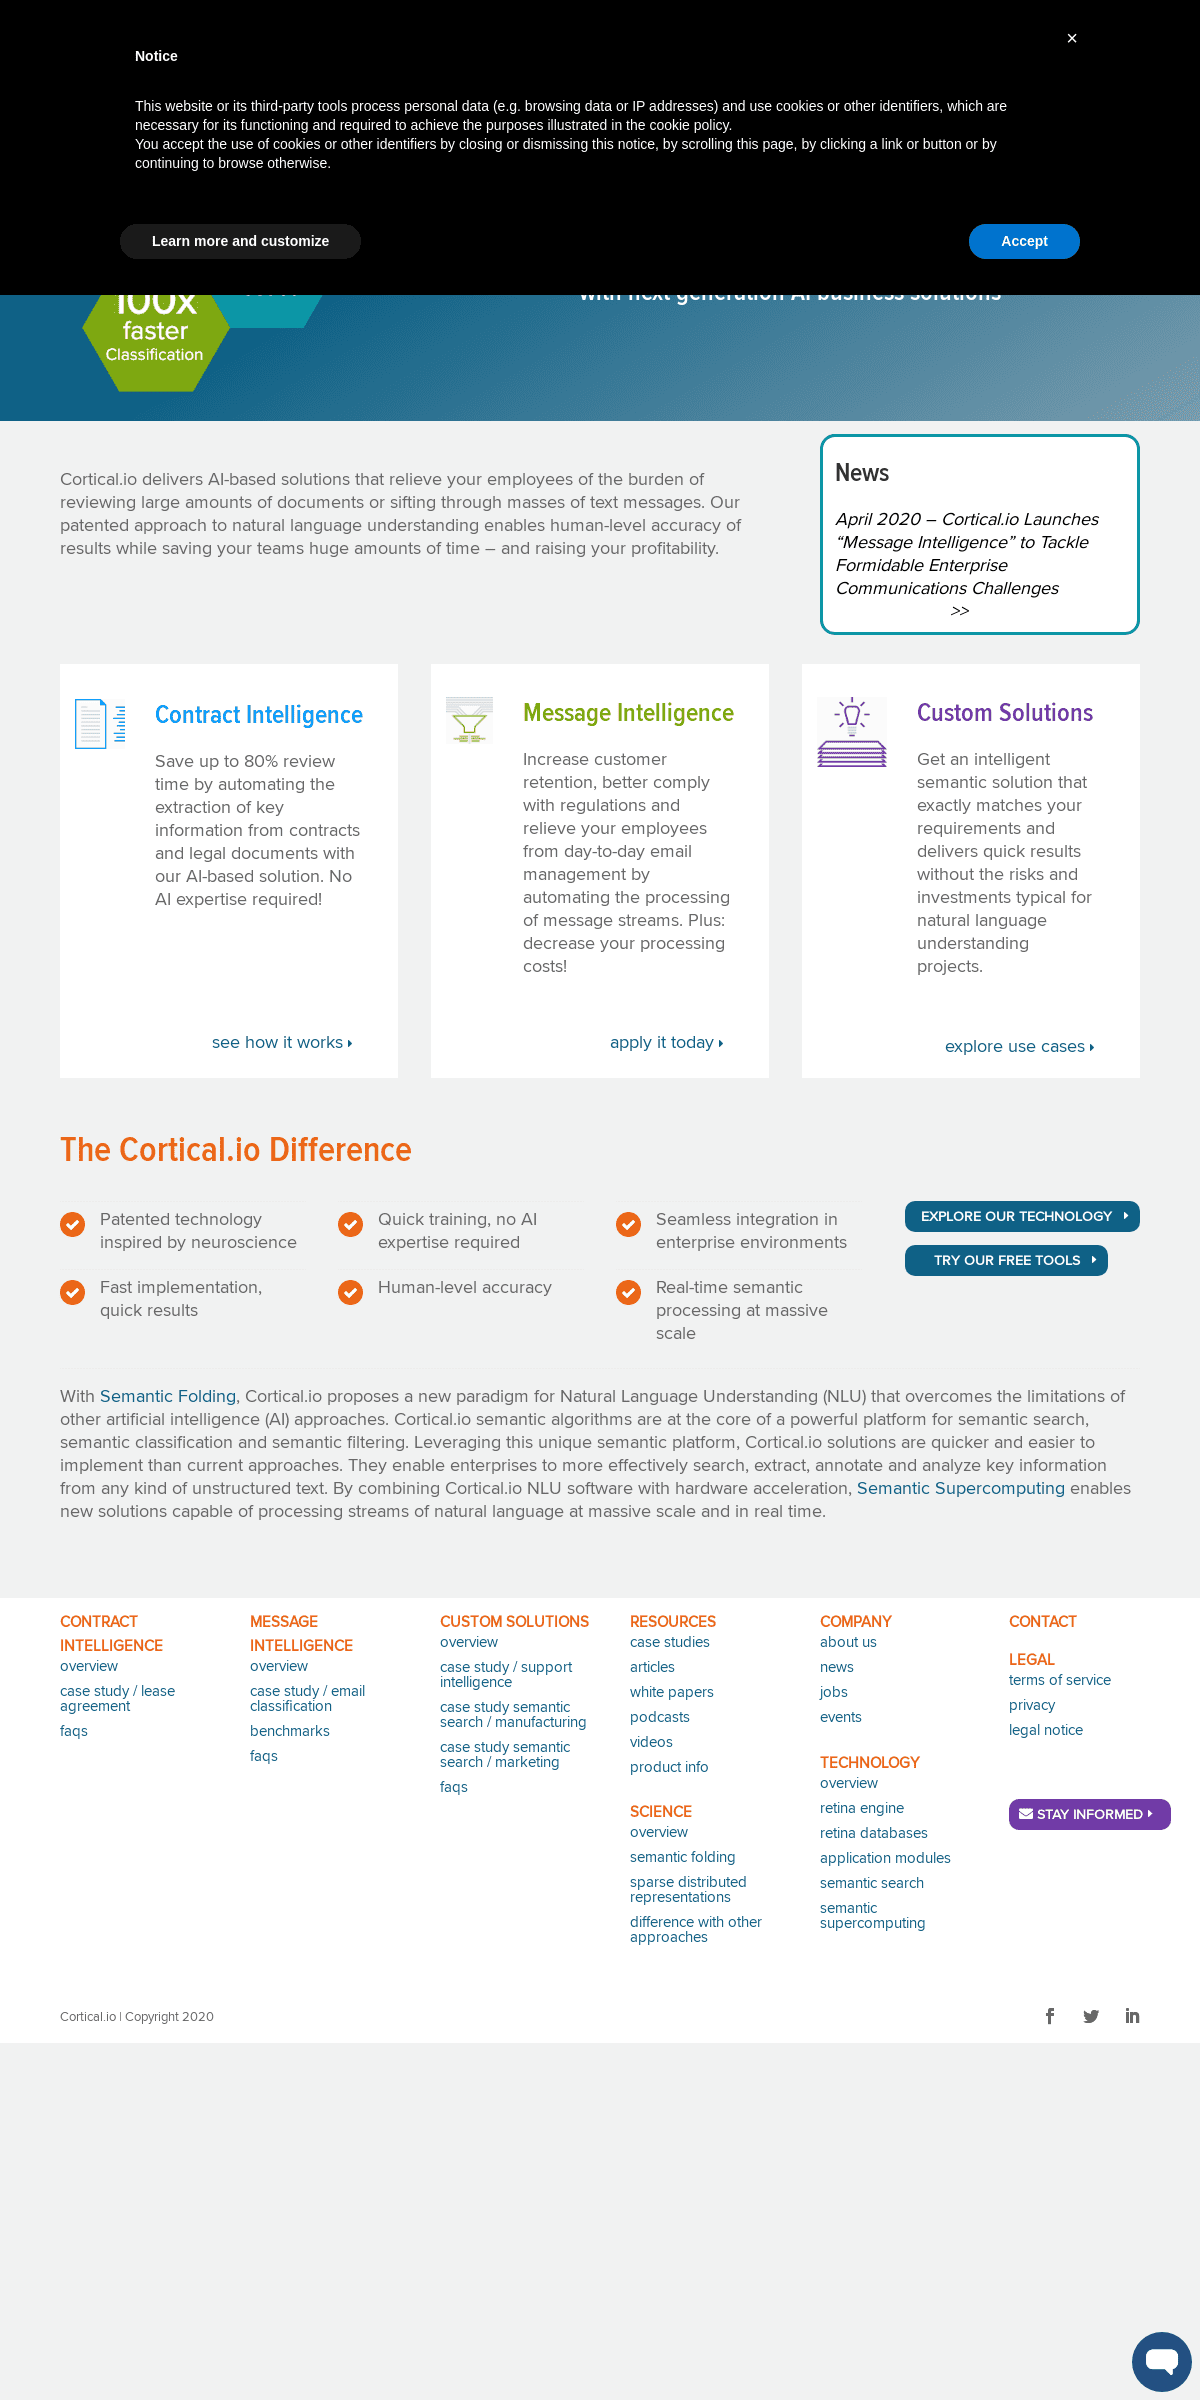 Cortical.io - Next generation of AI business applications